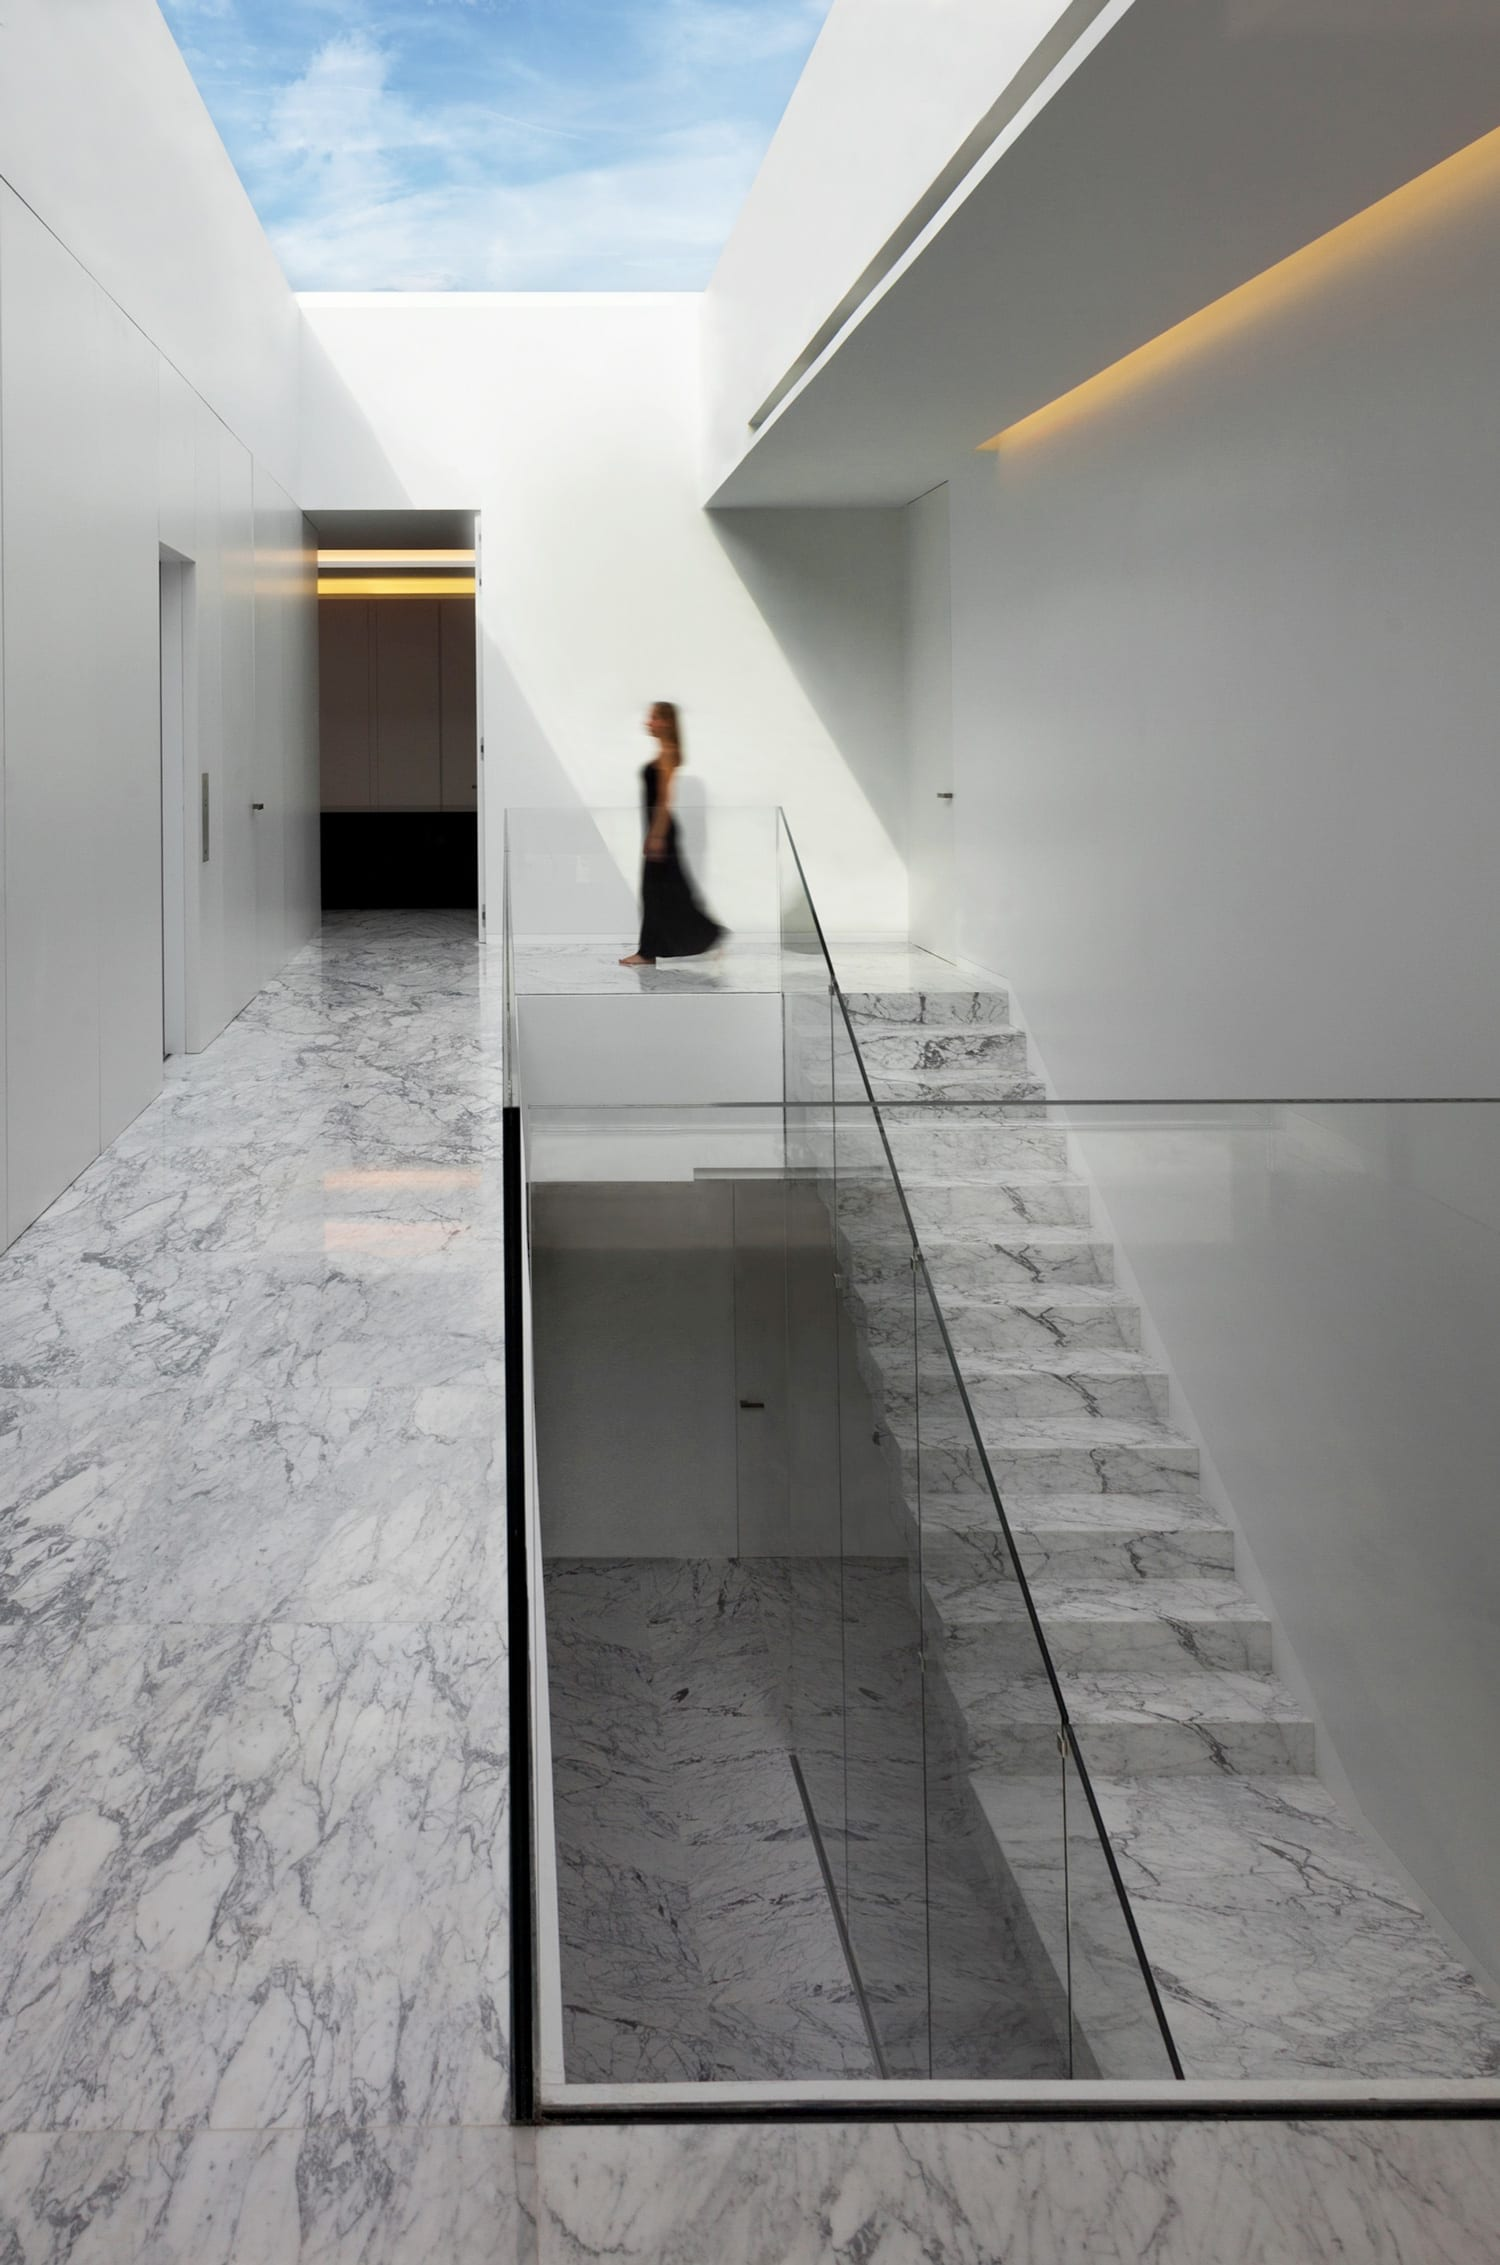 Aluminum House in Madrid by Fran Silvestre Arquitectos | Yellowtrace